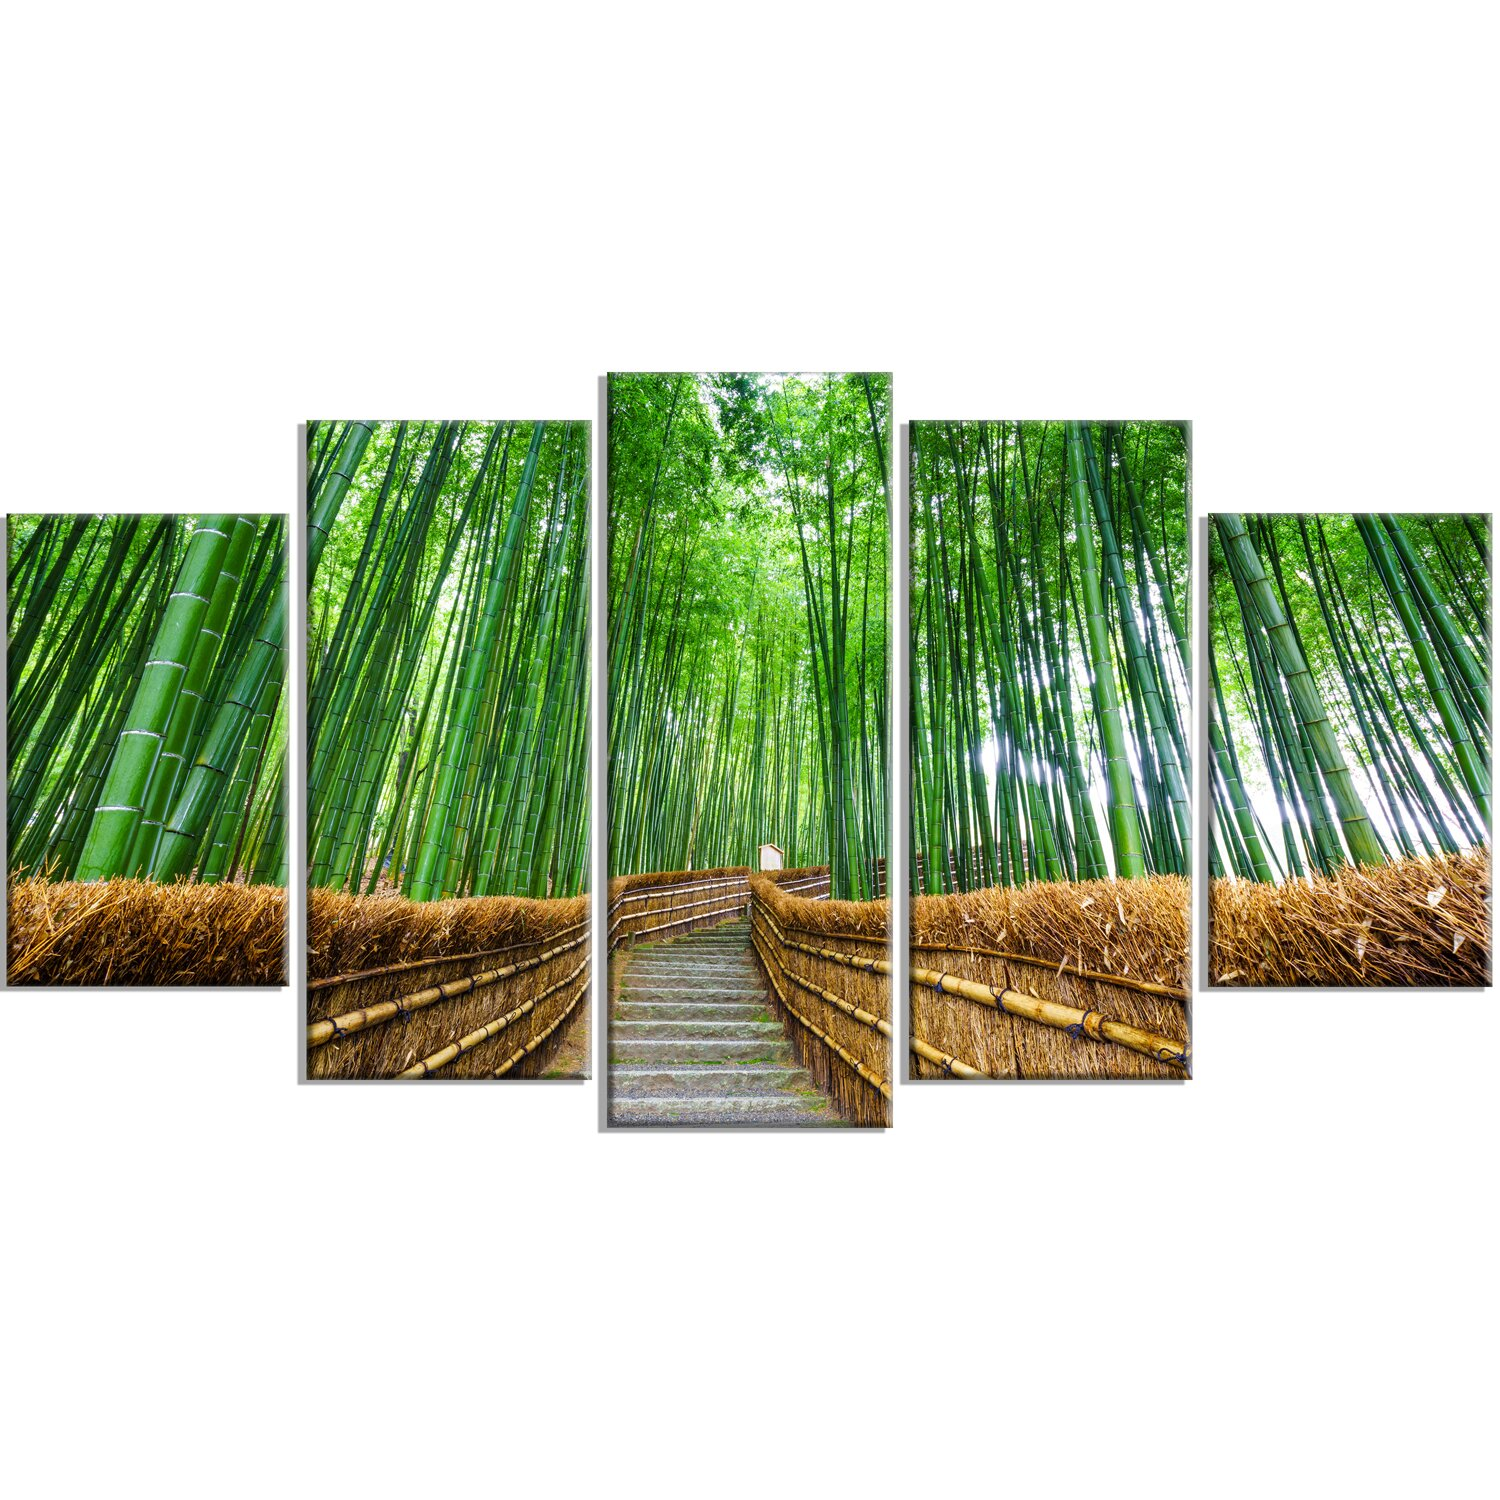 DesignArt 'Path To Bamboo Forest' 5 Piece Wall Art On